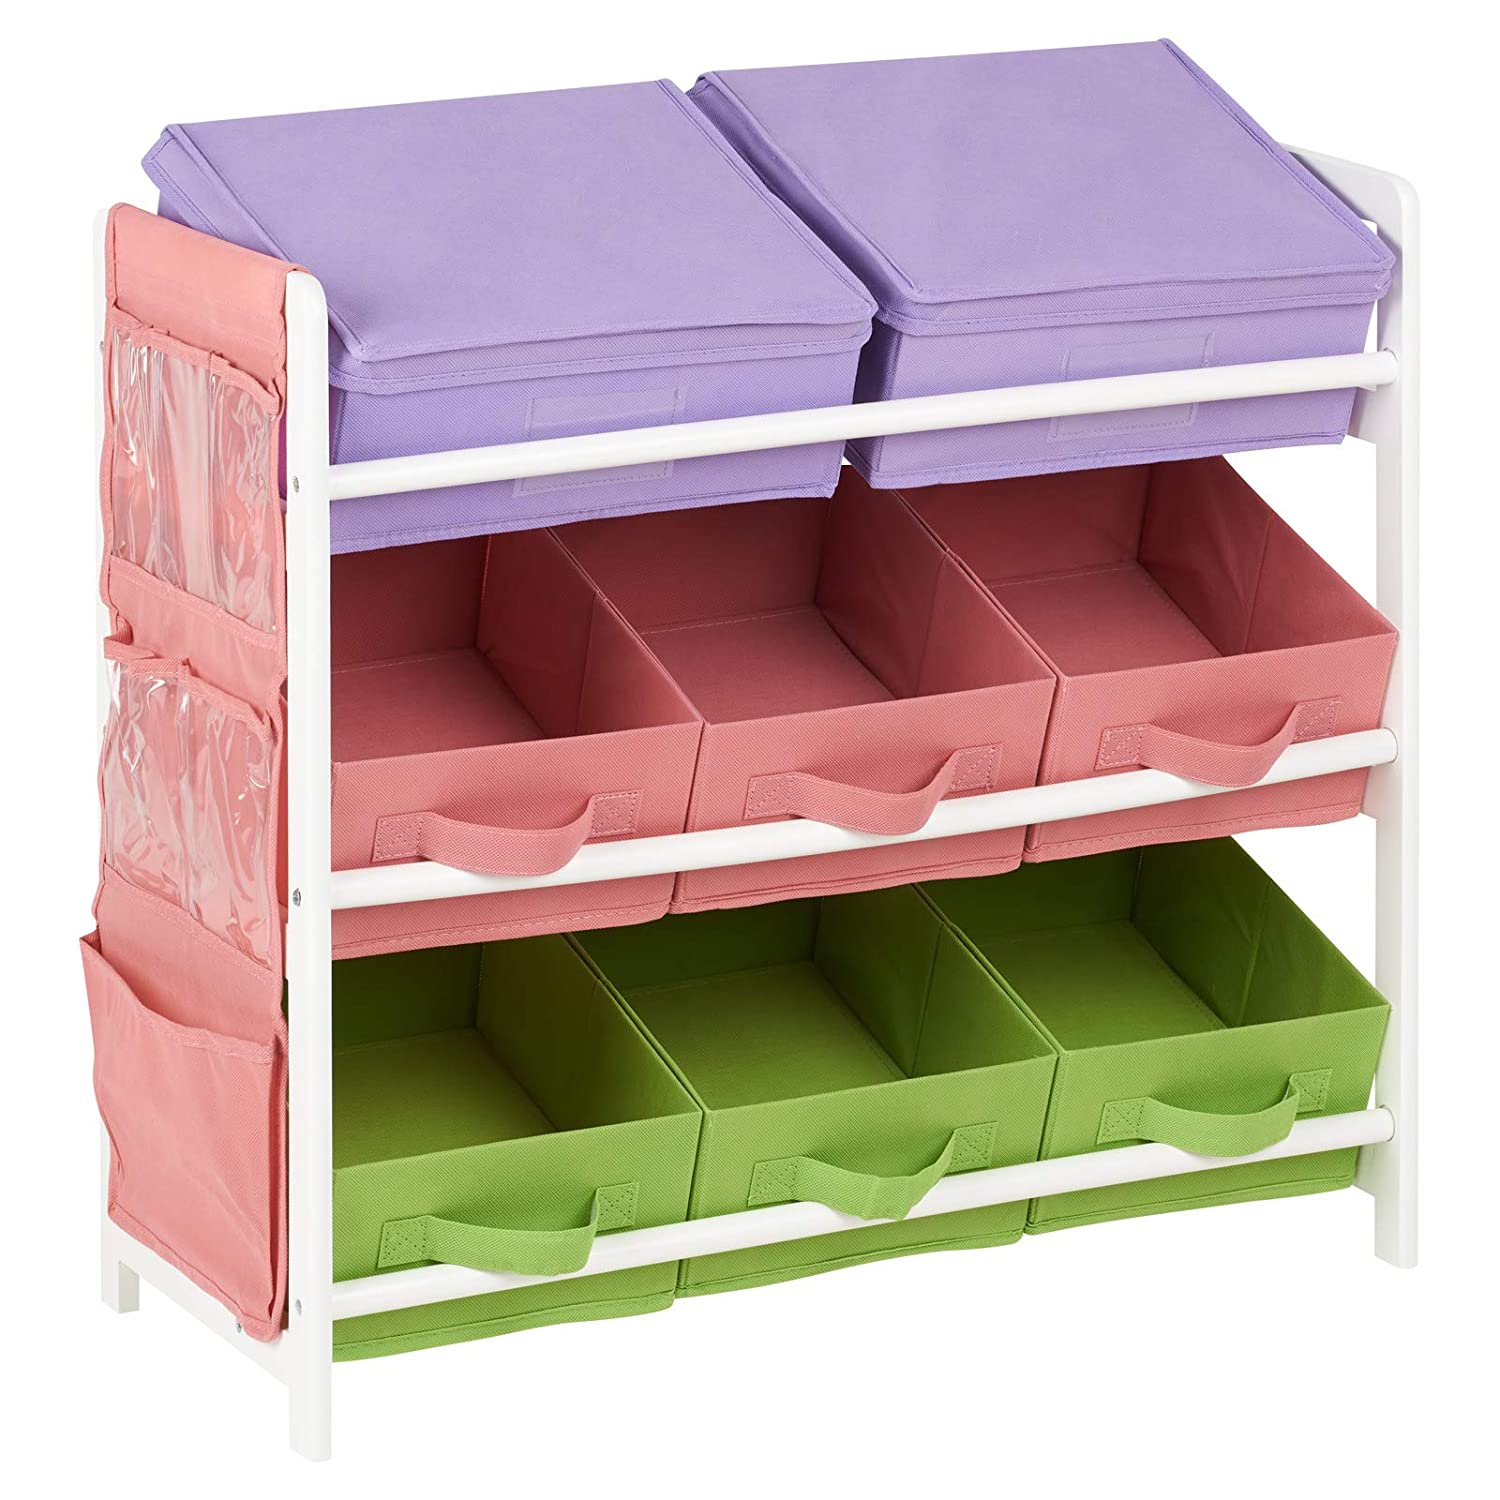 Hartleys 3 Tier Storage Unit with 8 Colourful Canvas Bins - Purple, Pink & Green